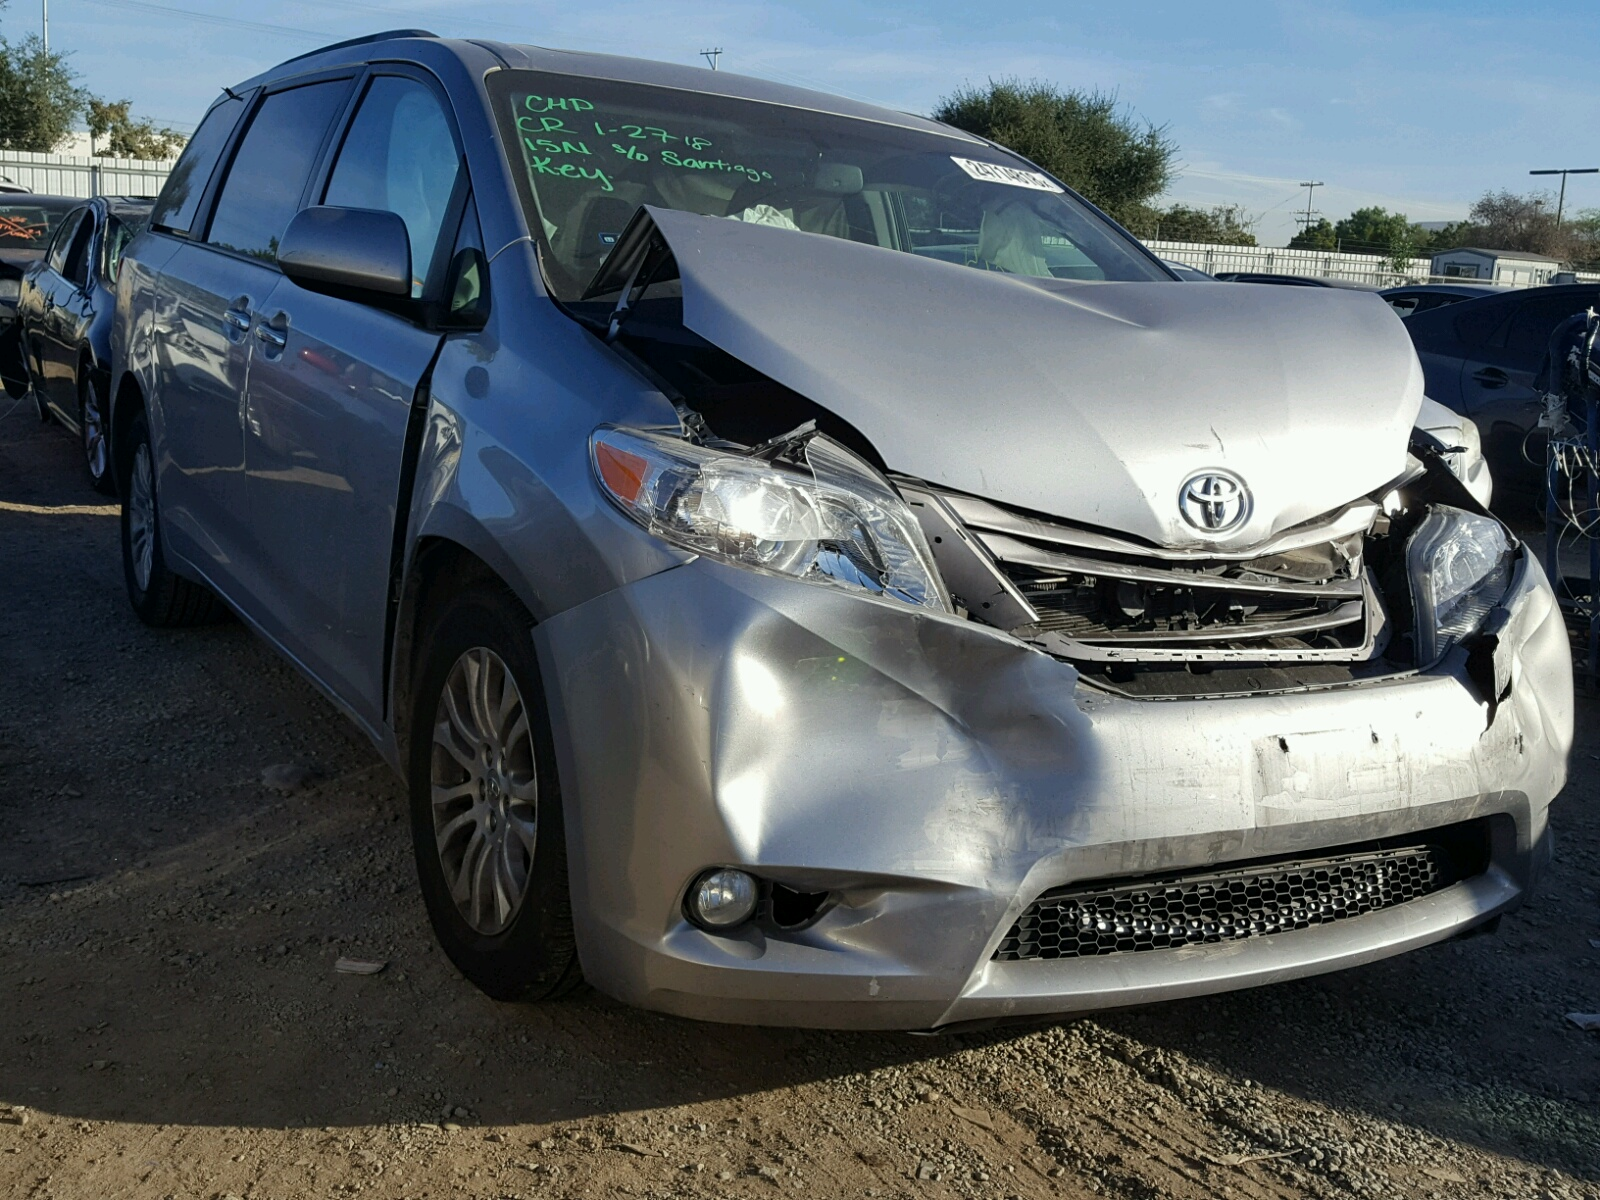 Auto Auction Ended on VIN JTDKB20U 2008 TOYOTA PRIUS in IL